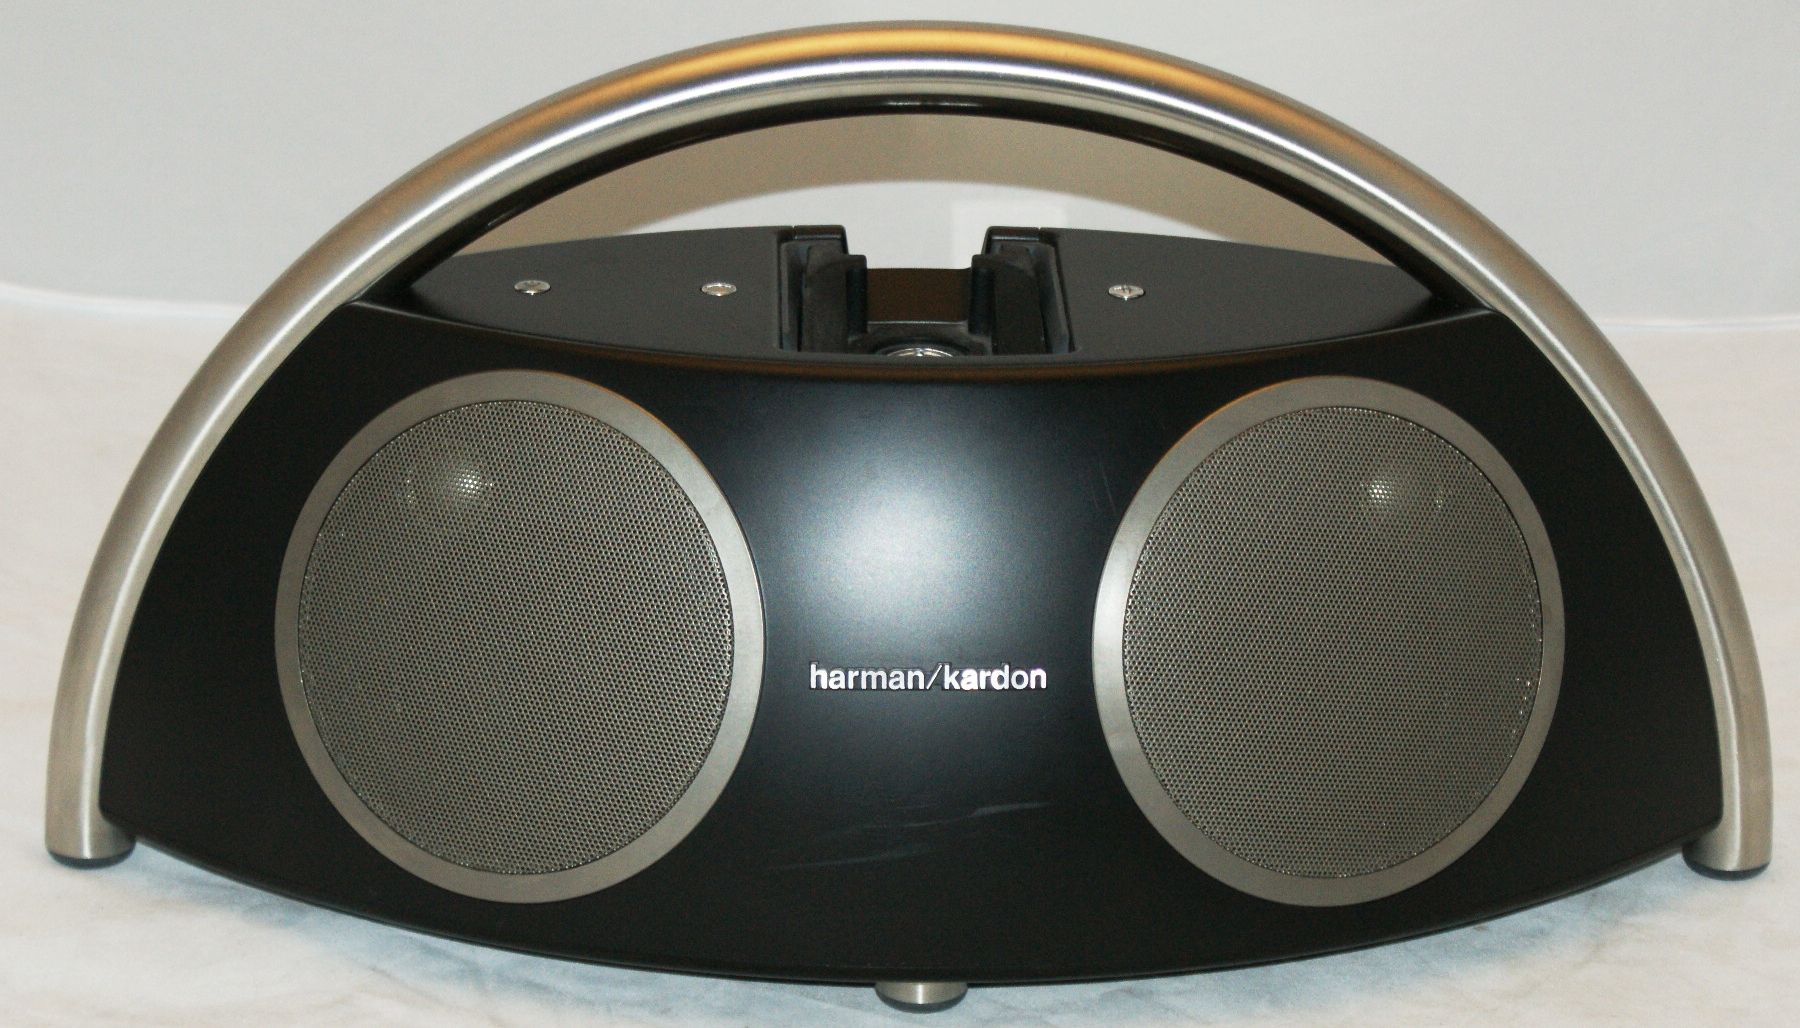 harman kardon go play ii tragbarer high end lautsprecher. Black Bedroom Furniture Sets. Home Design Ideas